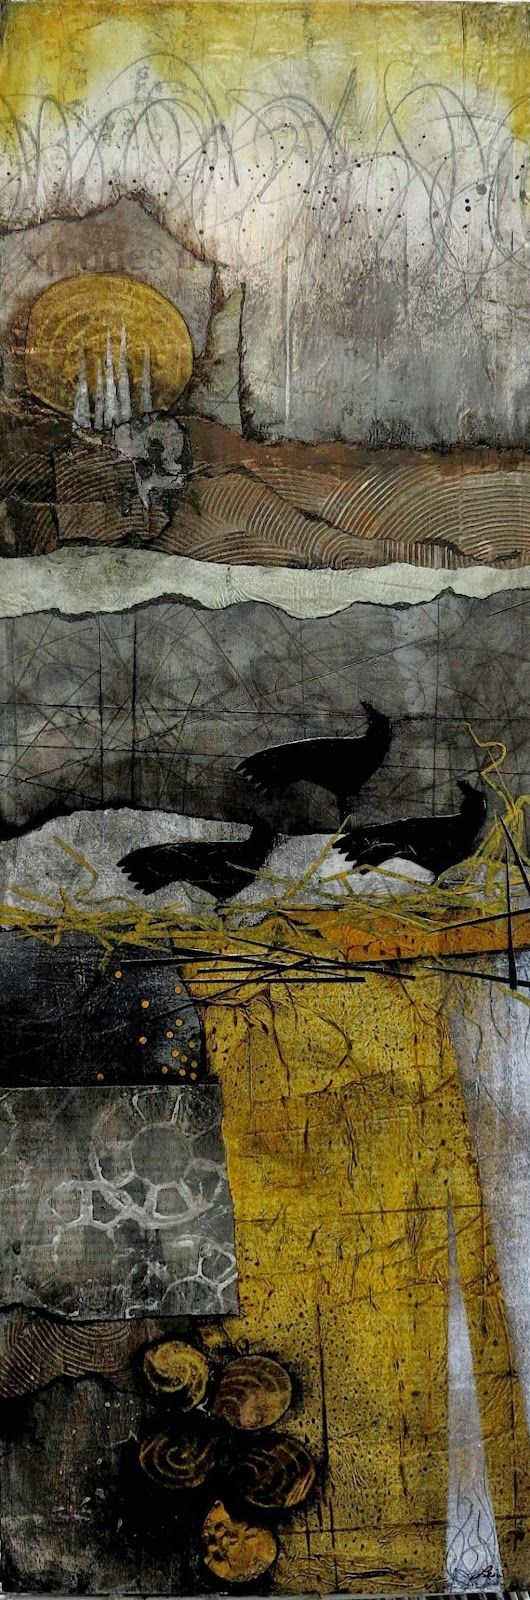 Collage art of Laura Lein-Svencner: Taking it even further....